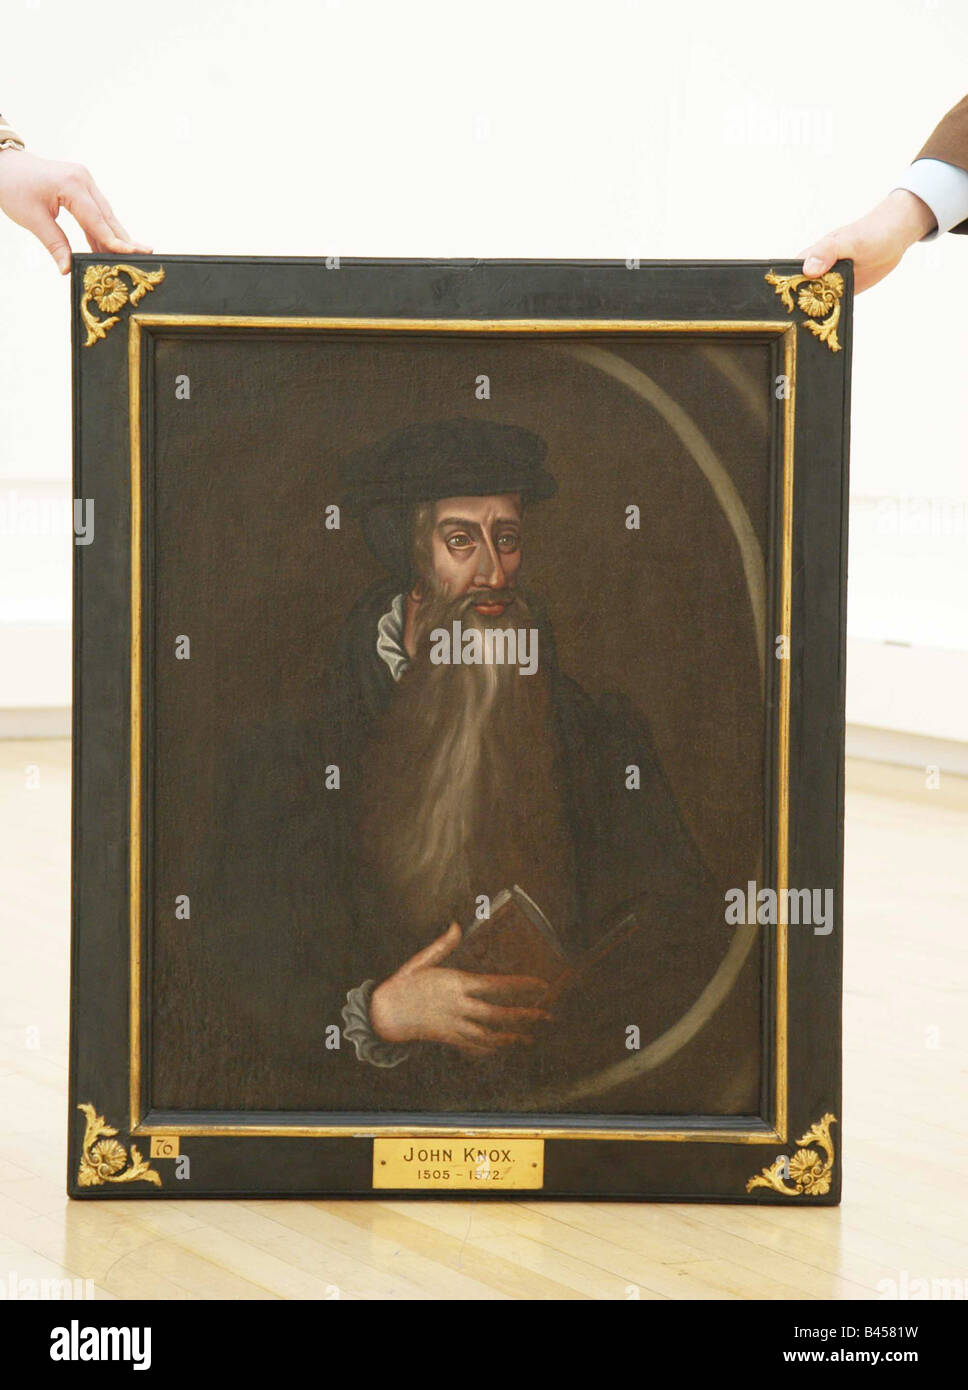 painting of John Knox a key figure from Scotlands history - Stock Image